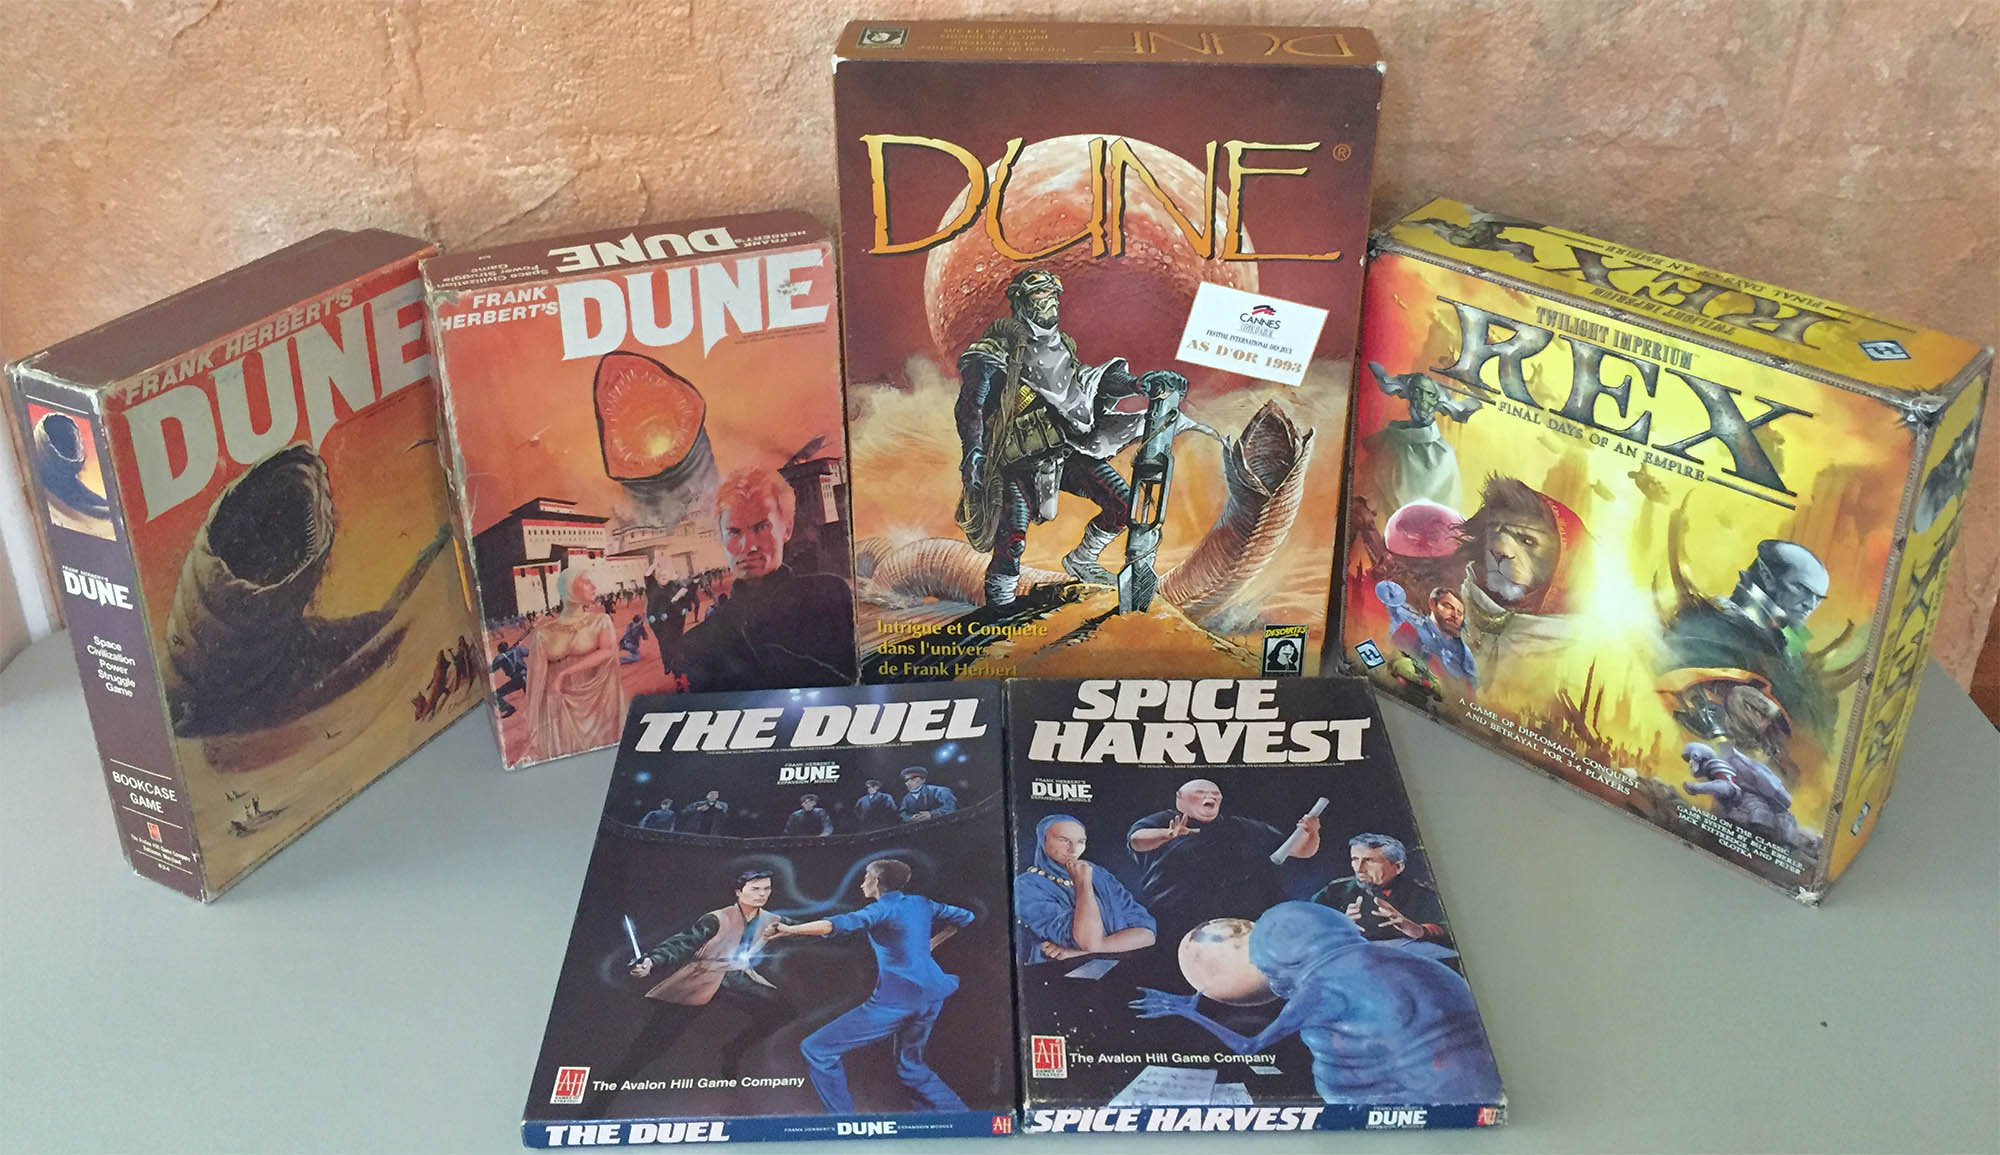 Dune and Rex game boxes from 1979 - 2012